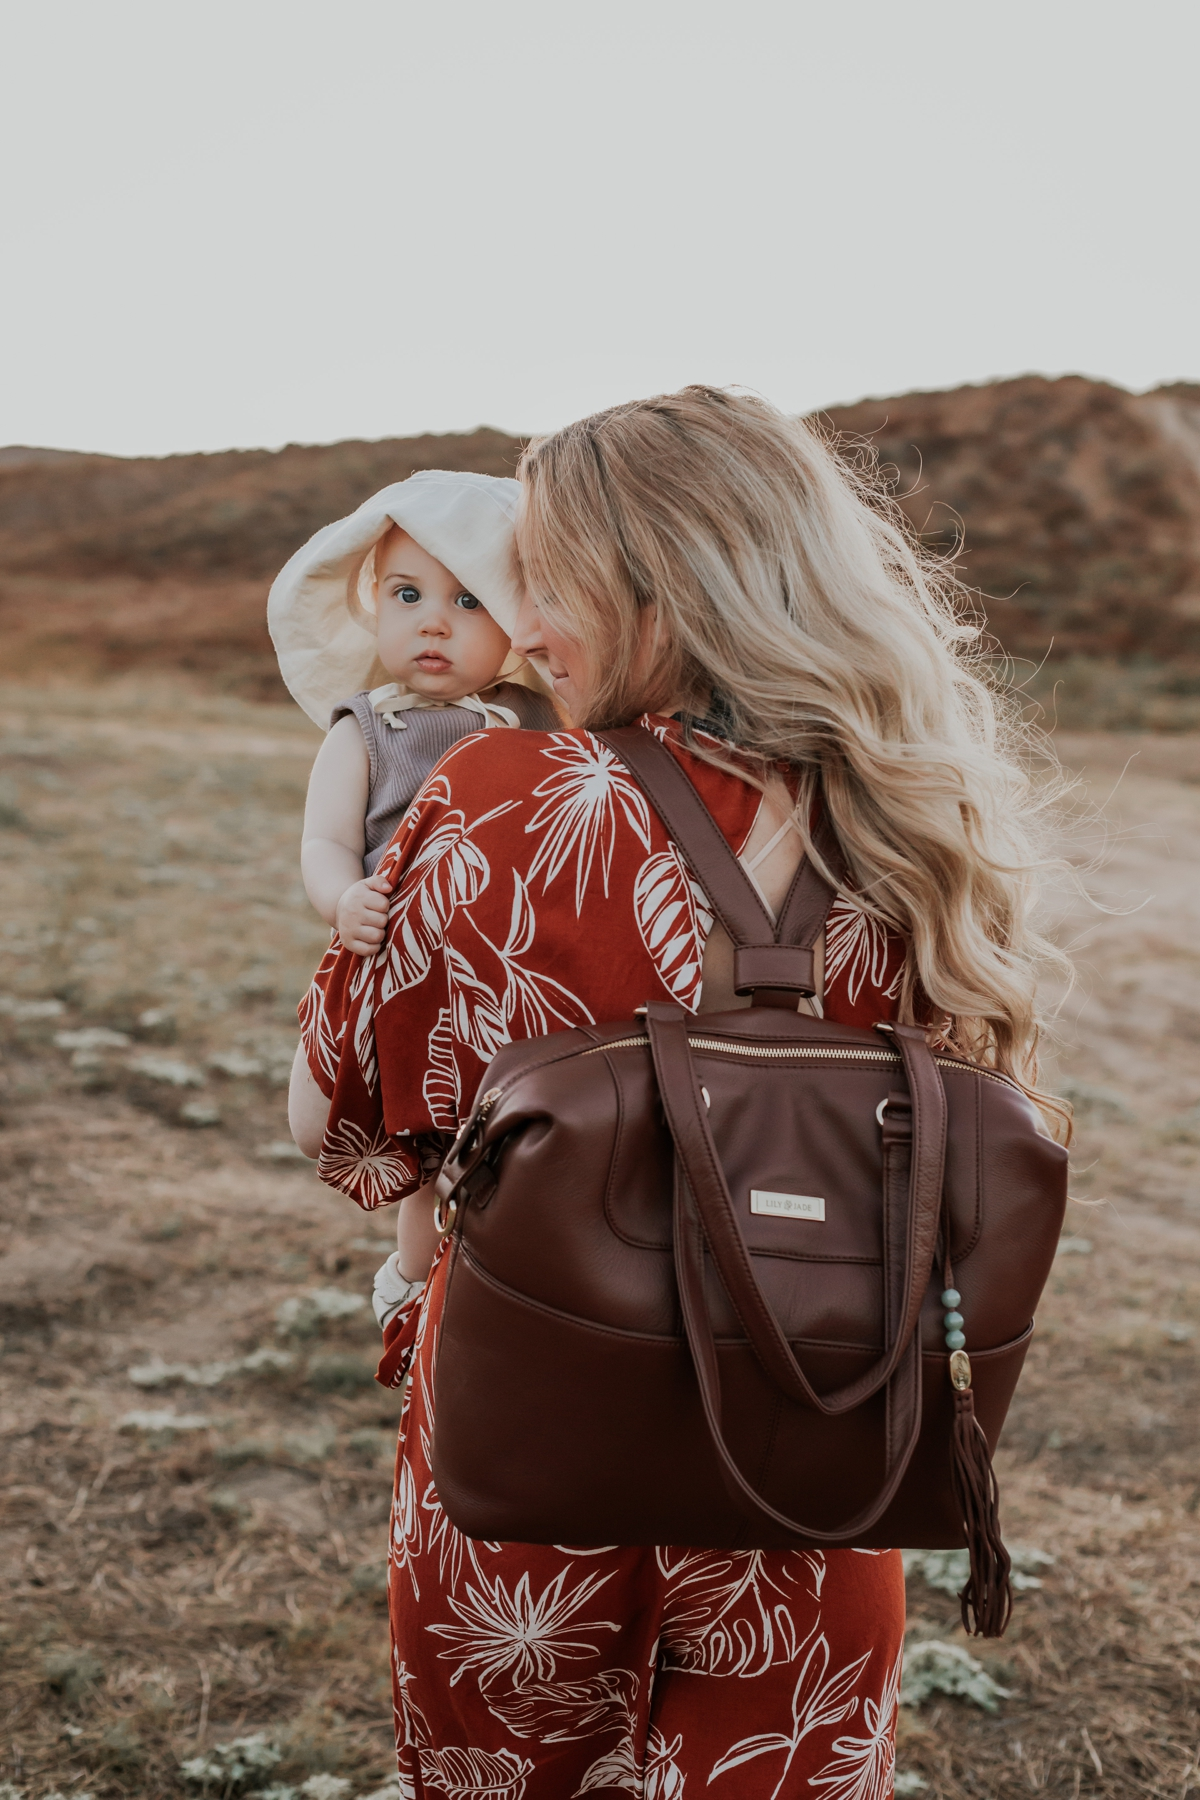 Kandis_Marino_Photography_Lifestyle_Lily_Jade_Diaper_Bag_Influencer_Abassador_Baby_Mom_Blogger_Mommy_Blog_Newborn_Pregnancy_0115.jpg